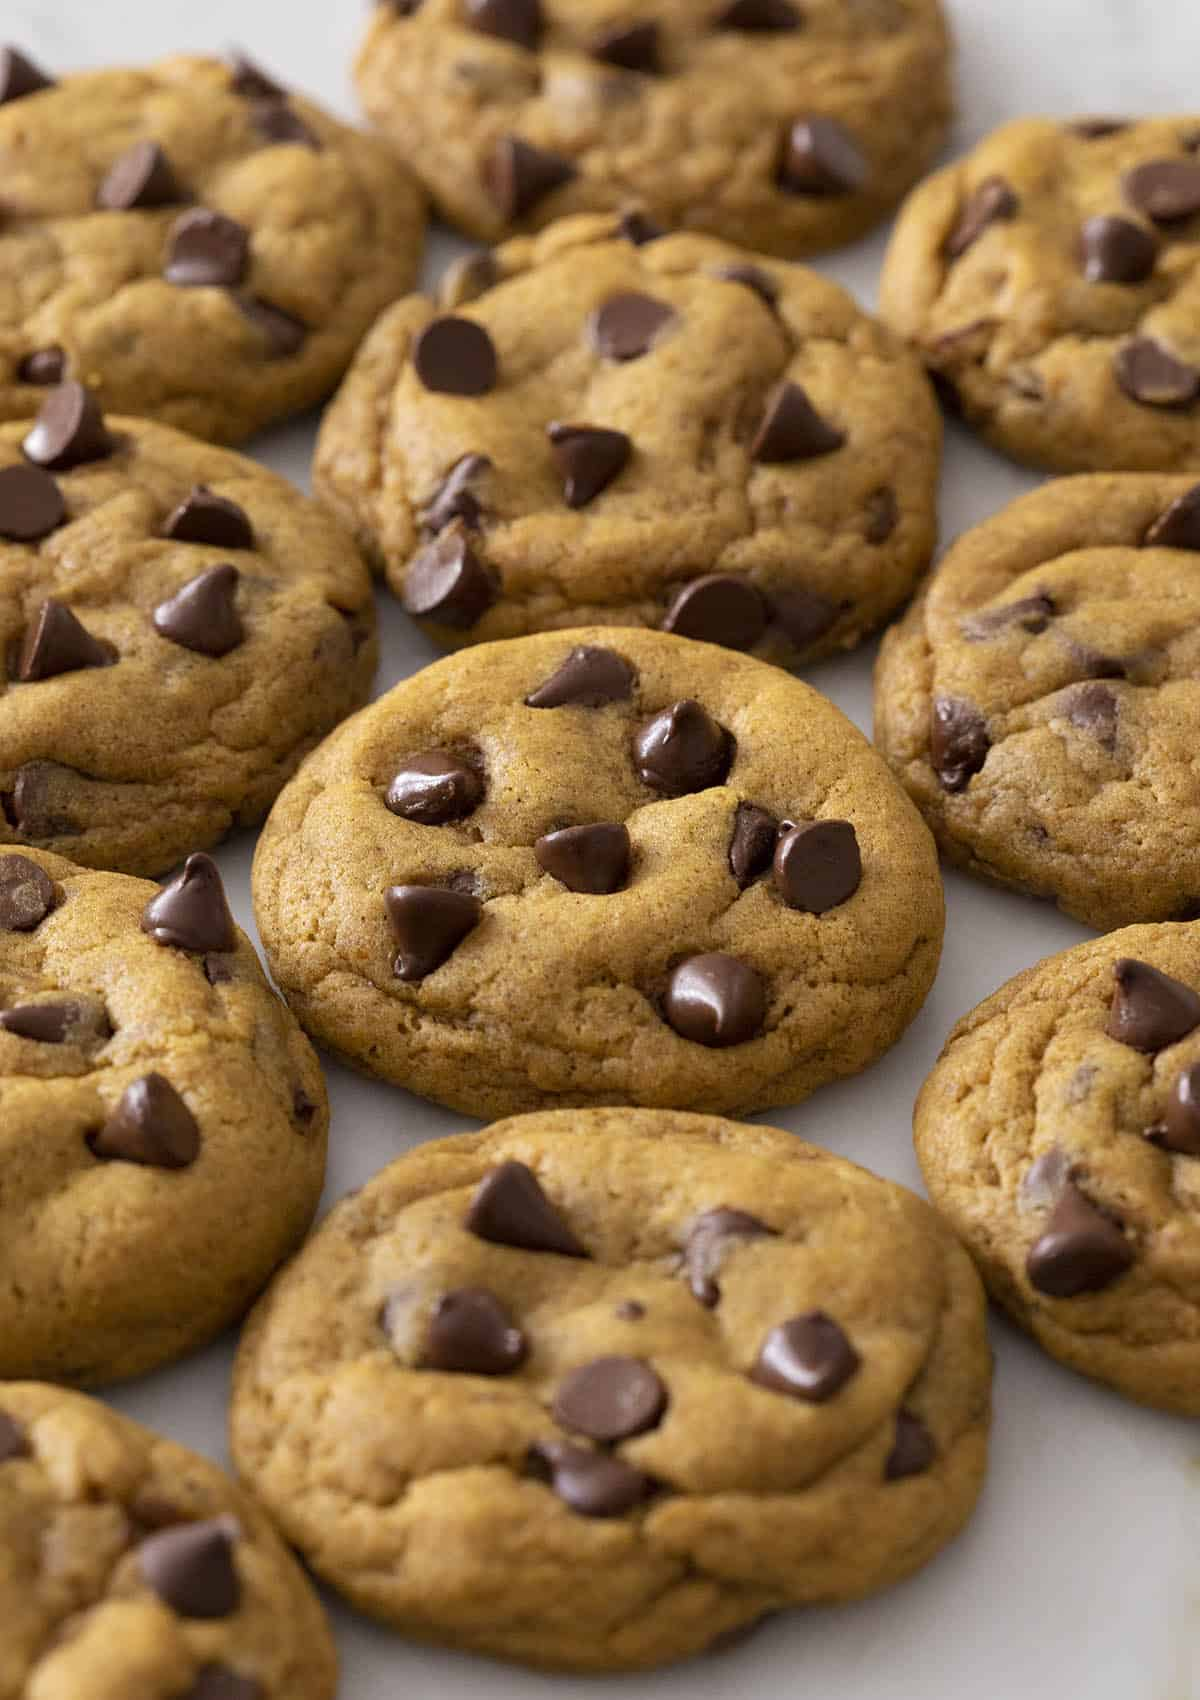 Soft and chewy pumpkin chocolate chip cookies on a marble counter.